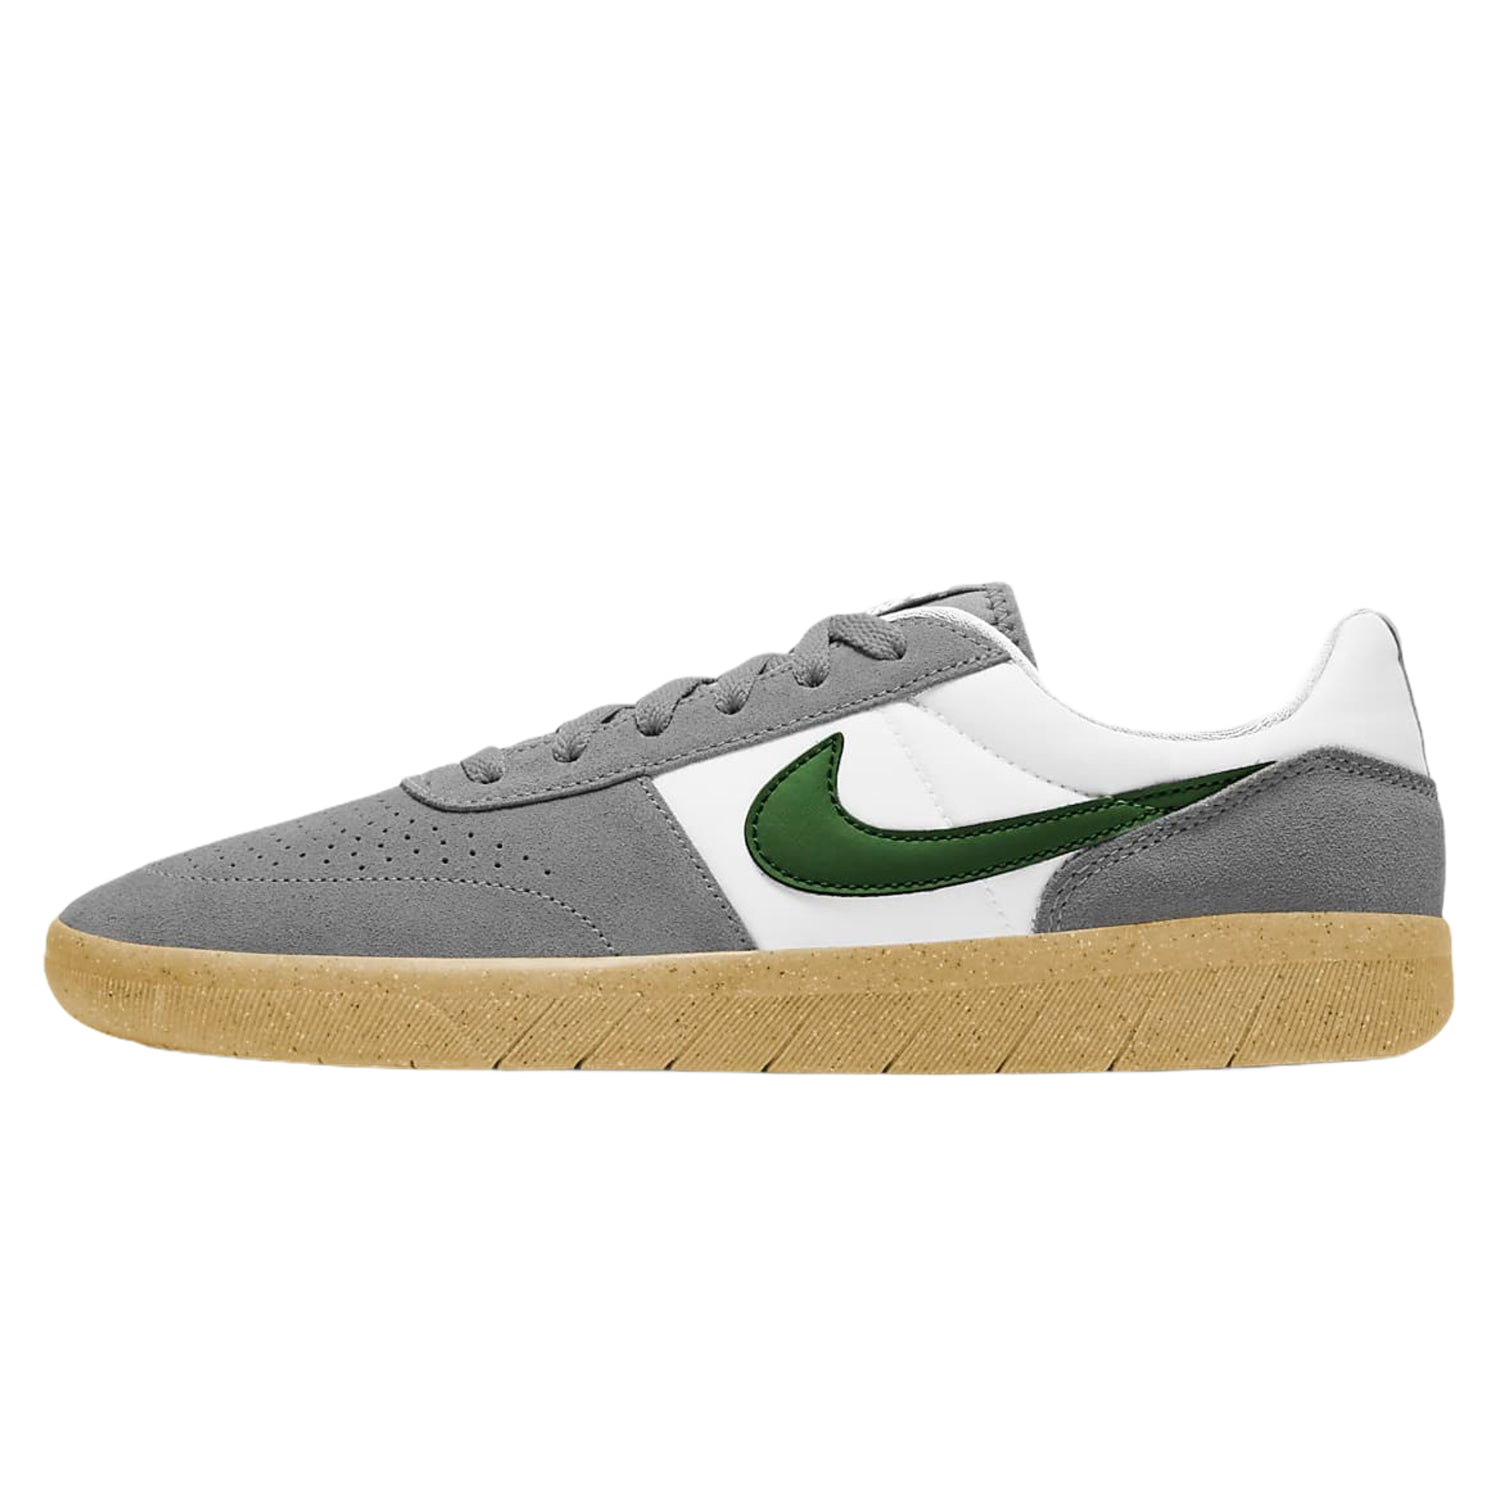 Nike SB Team Classic Particle Grey/White/Forest Green